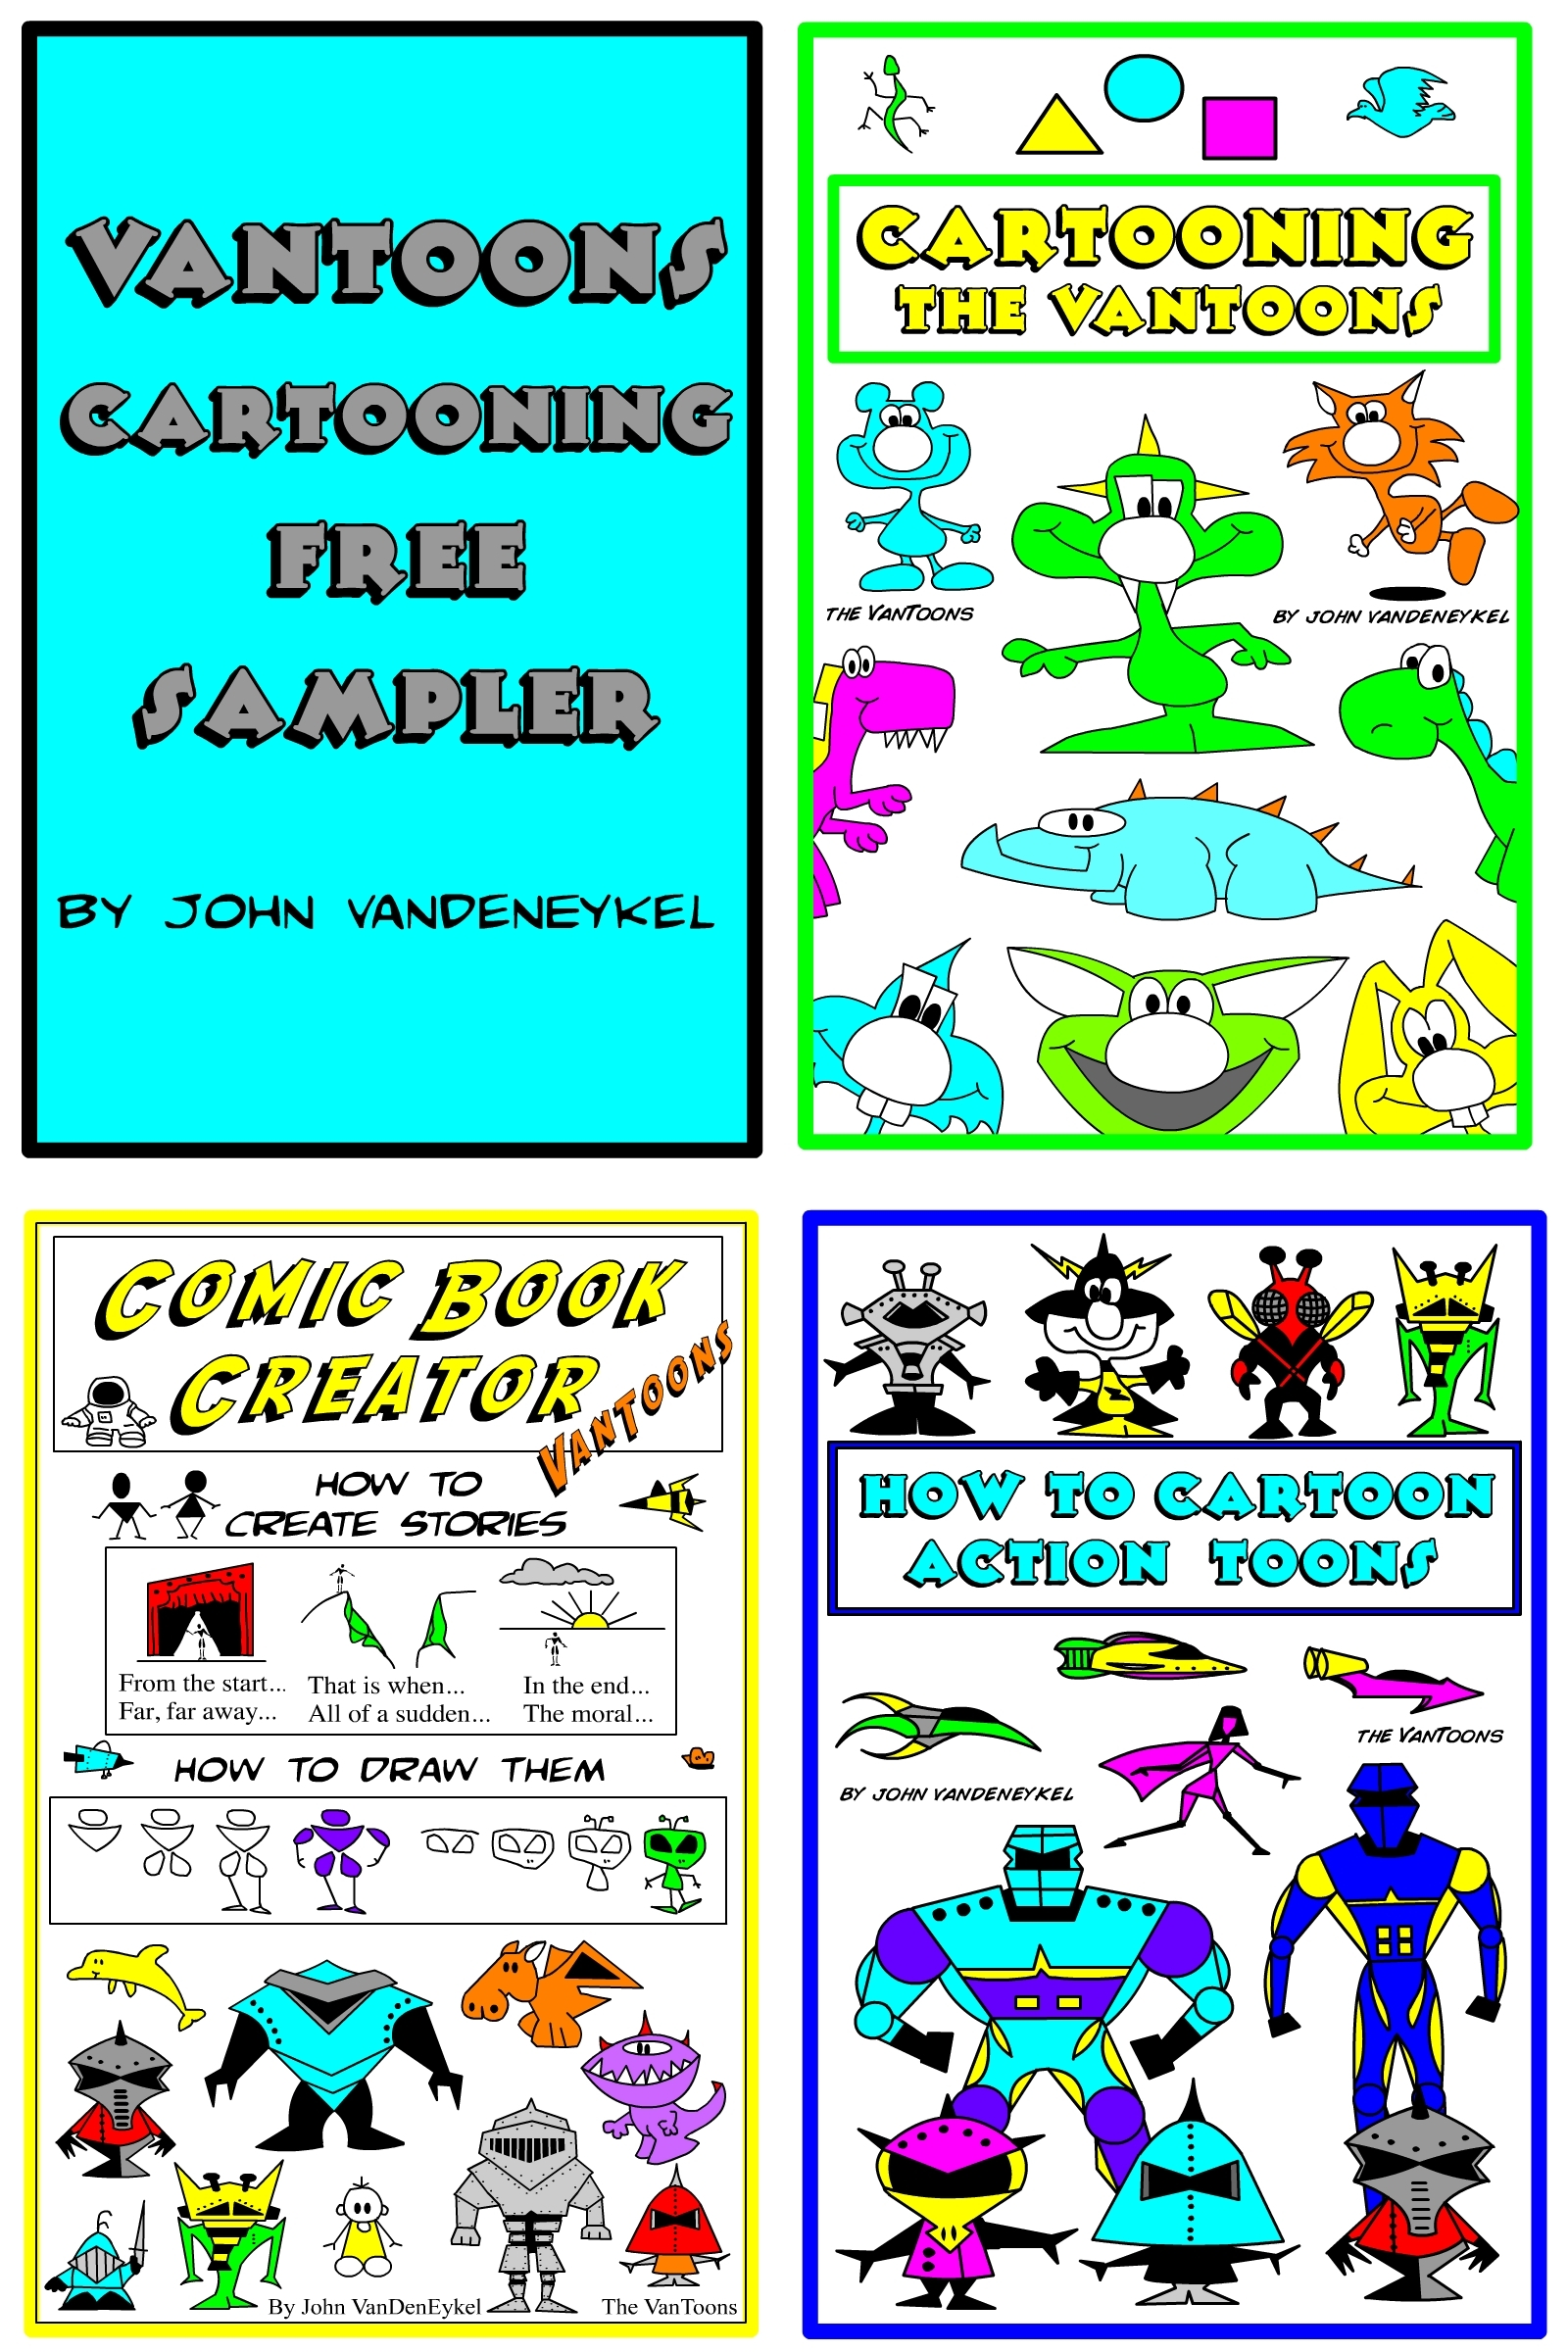 VanToons Cartooning Free Sampler